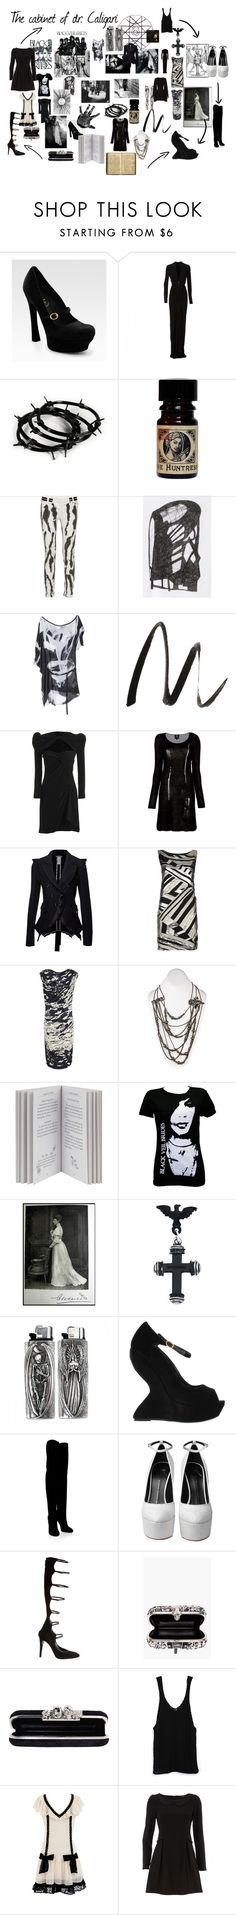 """""""Caligari"""" by greengoblinz ❤ liked on Polyvore featuring Yves Saint Laurent, Roland Mouret, Balmain, Acne Studios, Helmut Lang, FingerPrint Jewellry, Benefit, Sharpie, Carven and McQ by Alexander McQueen"""